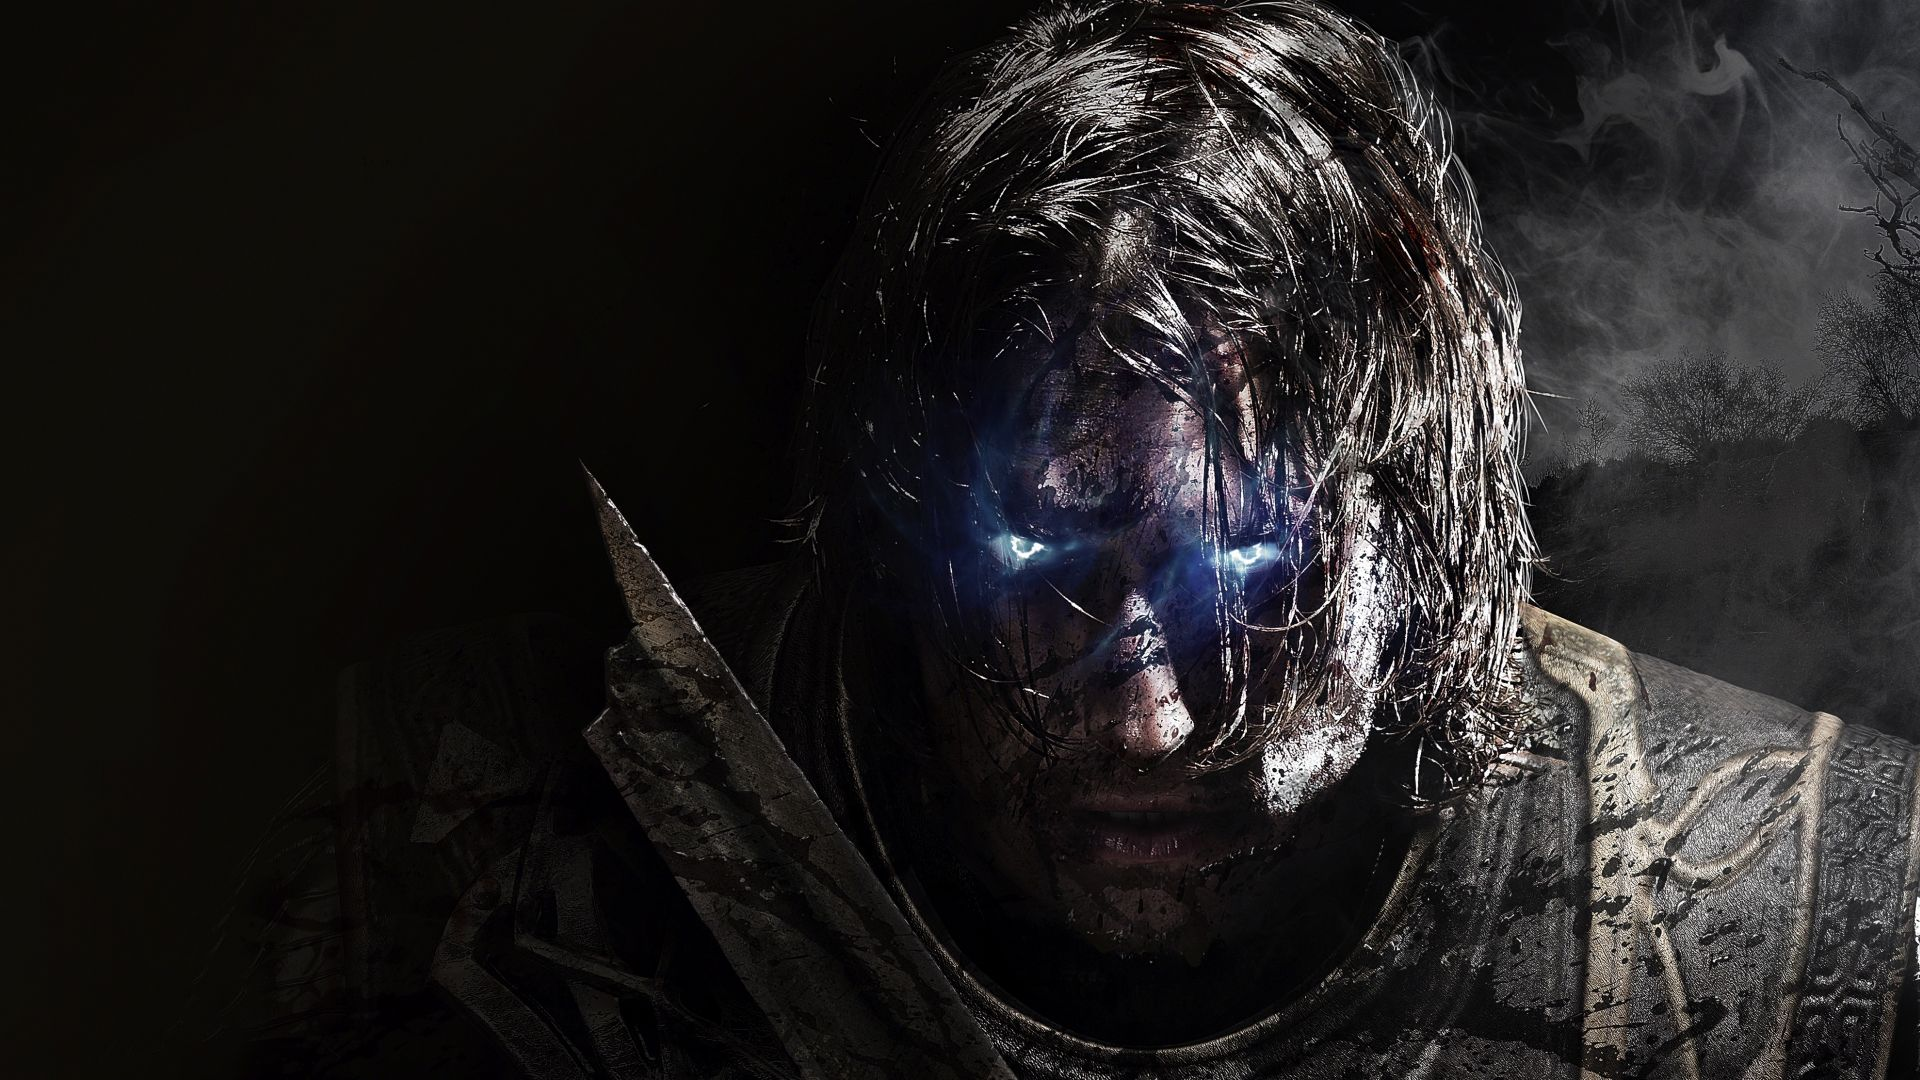 Middle-earth: Shadow of Mordor, video game, dark, warrior, face